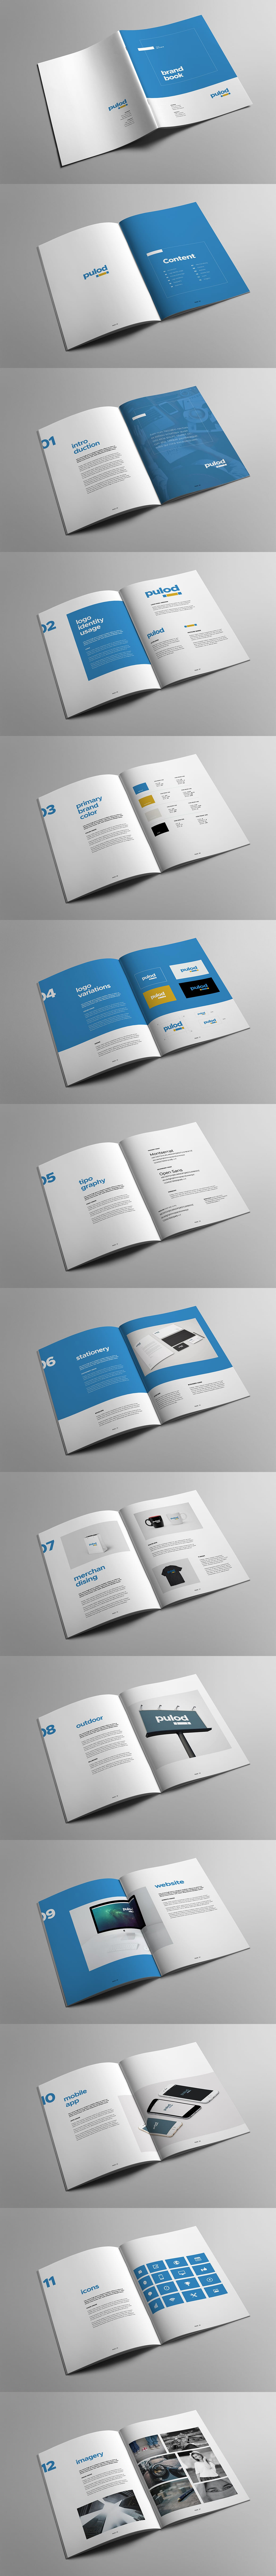 Minimal Brand Book Template InDesign INDD - 28 Custom Pages, A4 ...